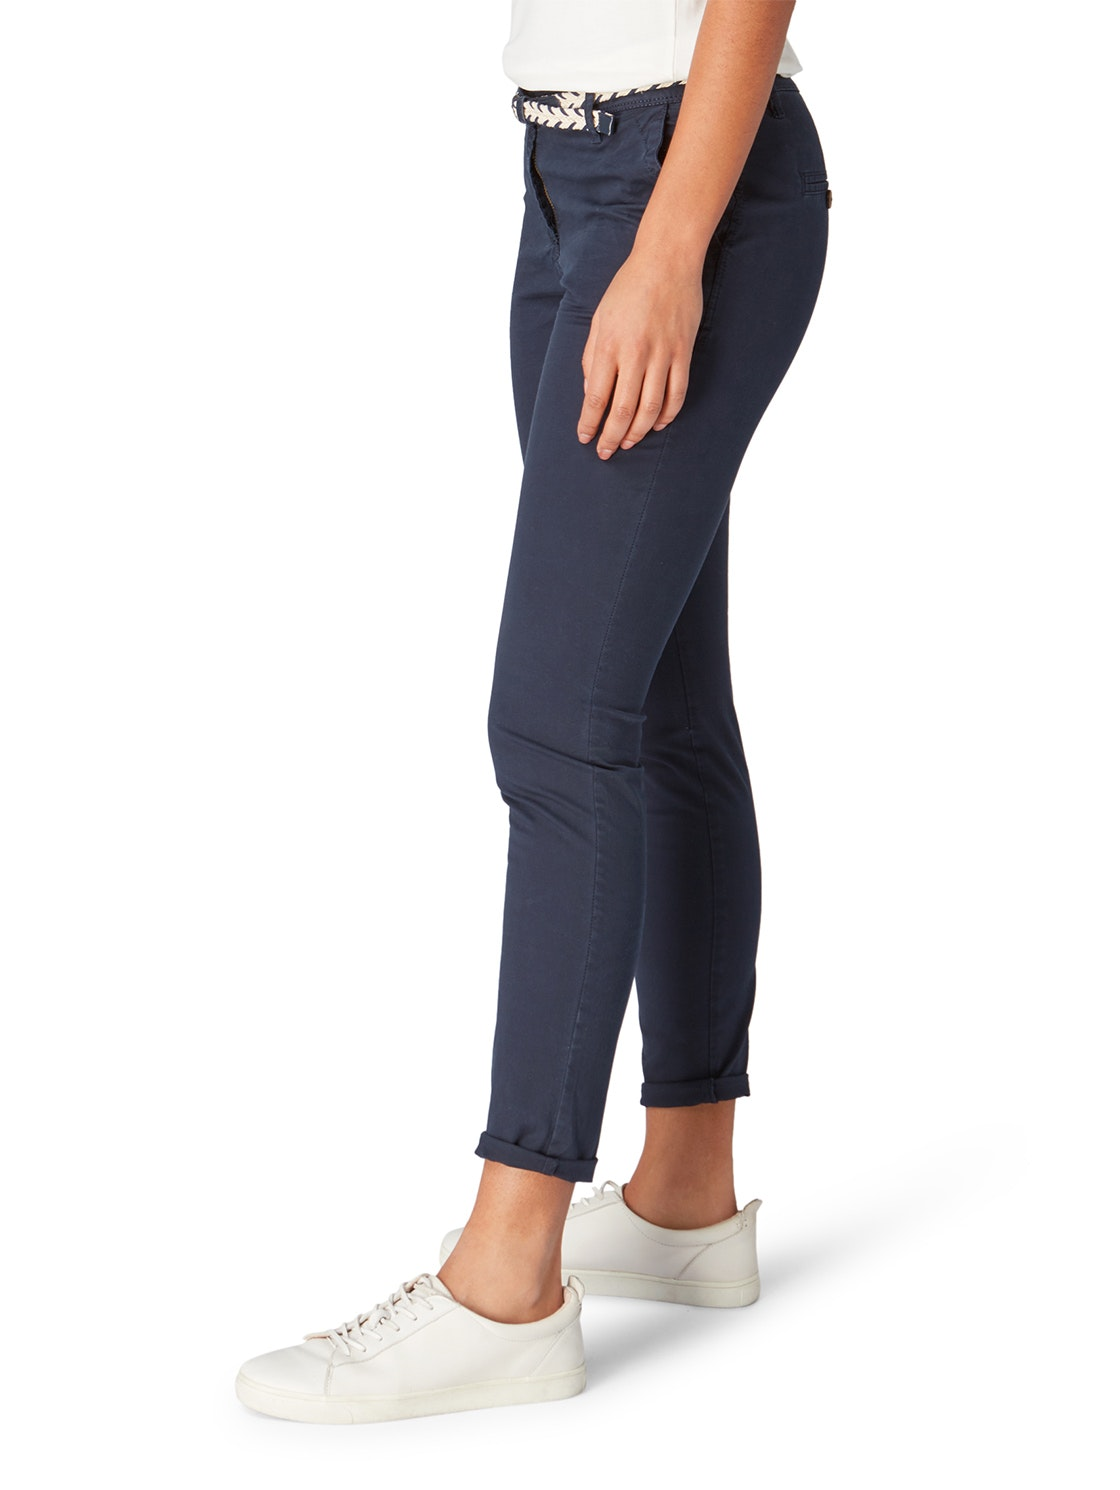 Tom Tailor Damen Chino Hose Slim 1008380.xx.70 10668 sky captain blue WF19 TTC1